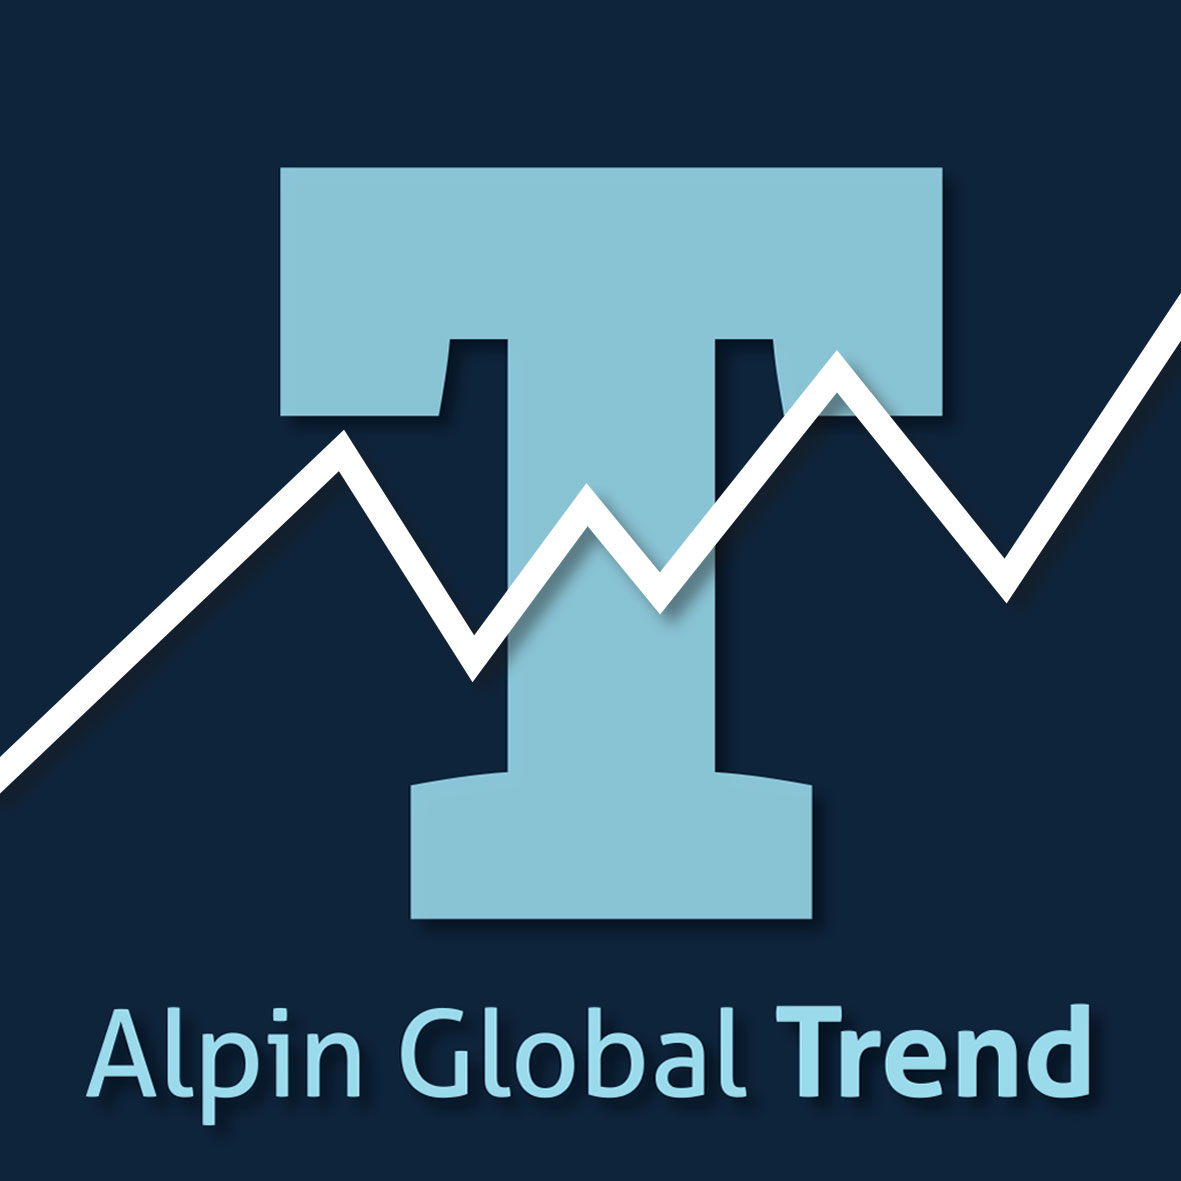 Alpin Global Trend